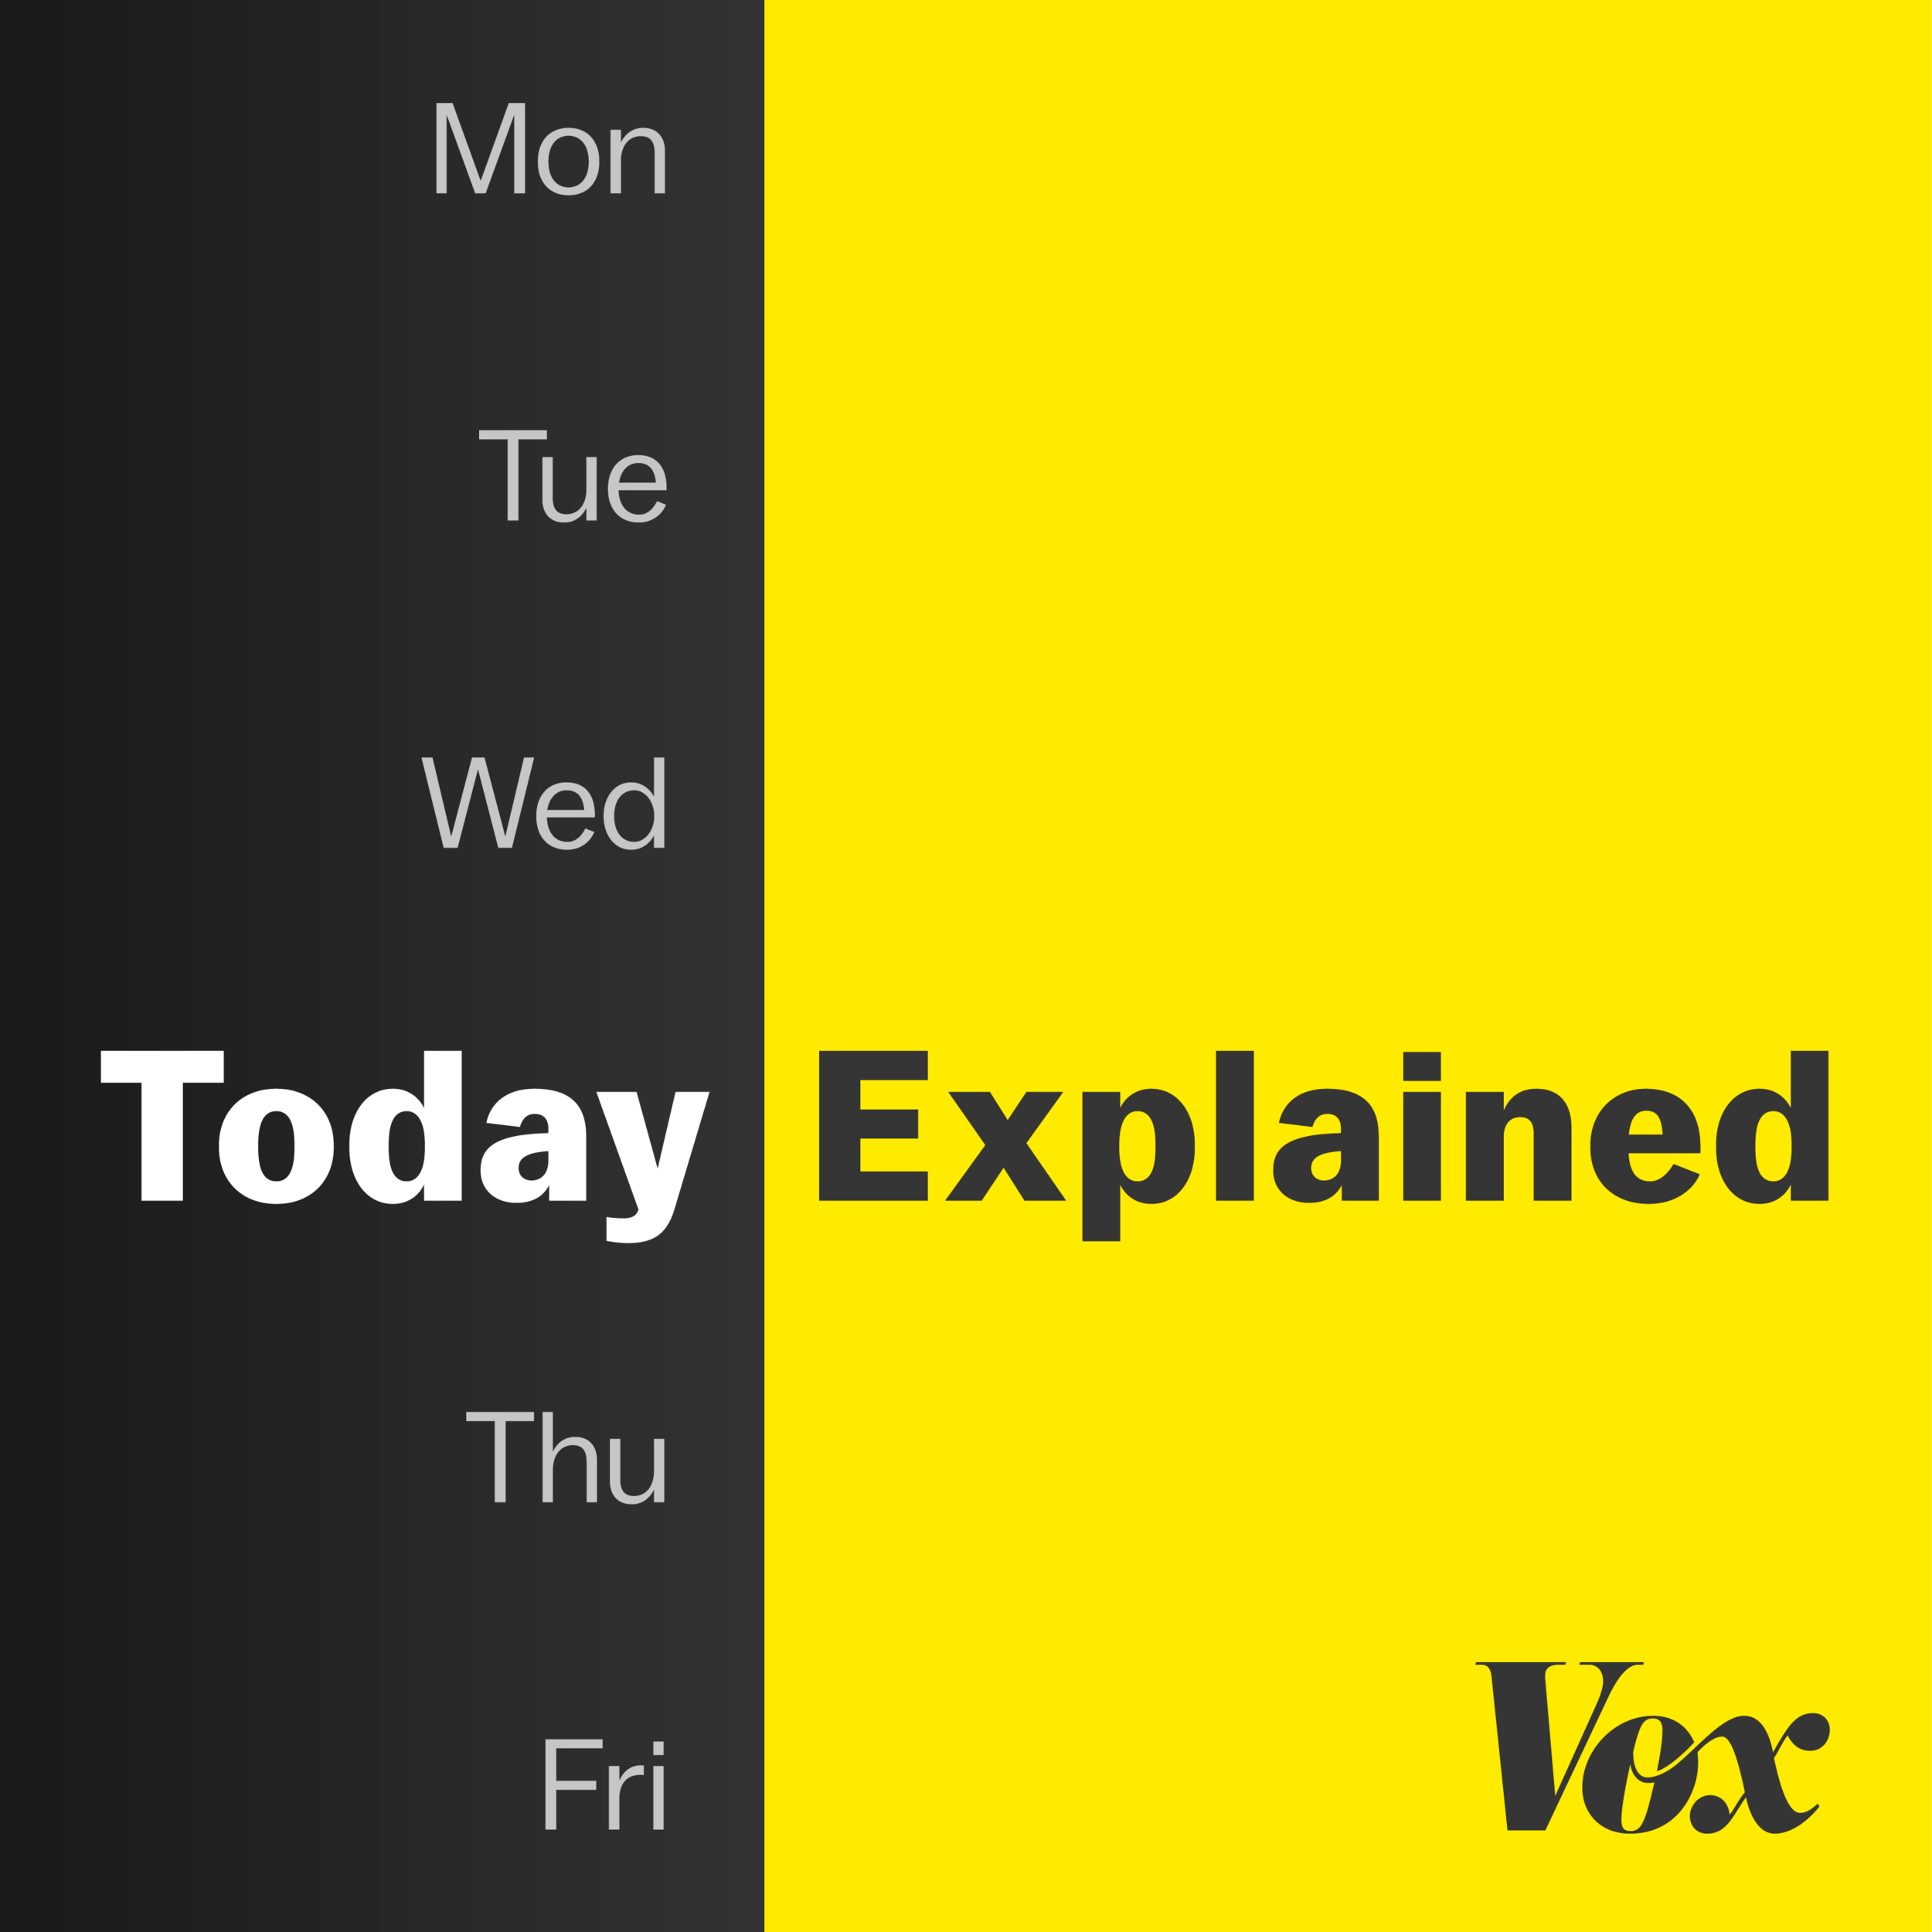 Today, Explained by Vox and Stitcher - With a transparent goal of helping process the rapid news flow,Today, Explainedis a great way to end your day. Reflect on today's happenings with some of the top voices at Vox, uploaded regularly.